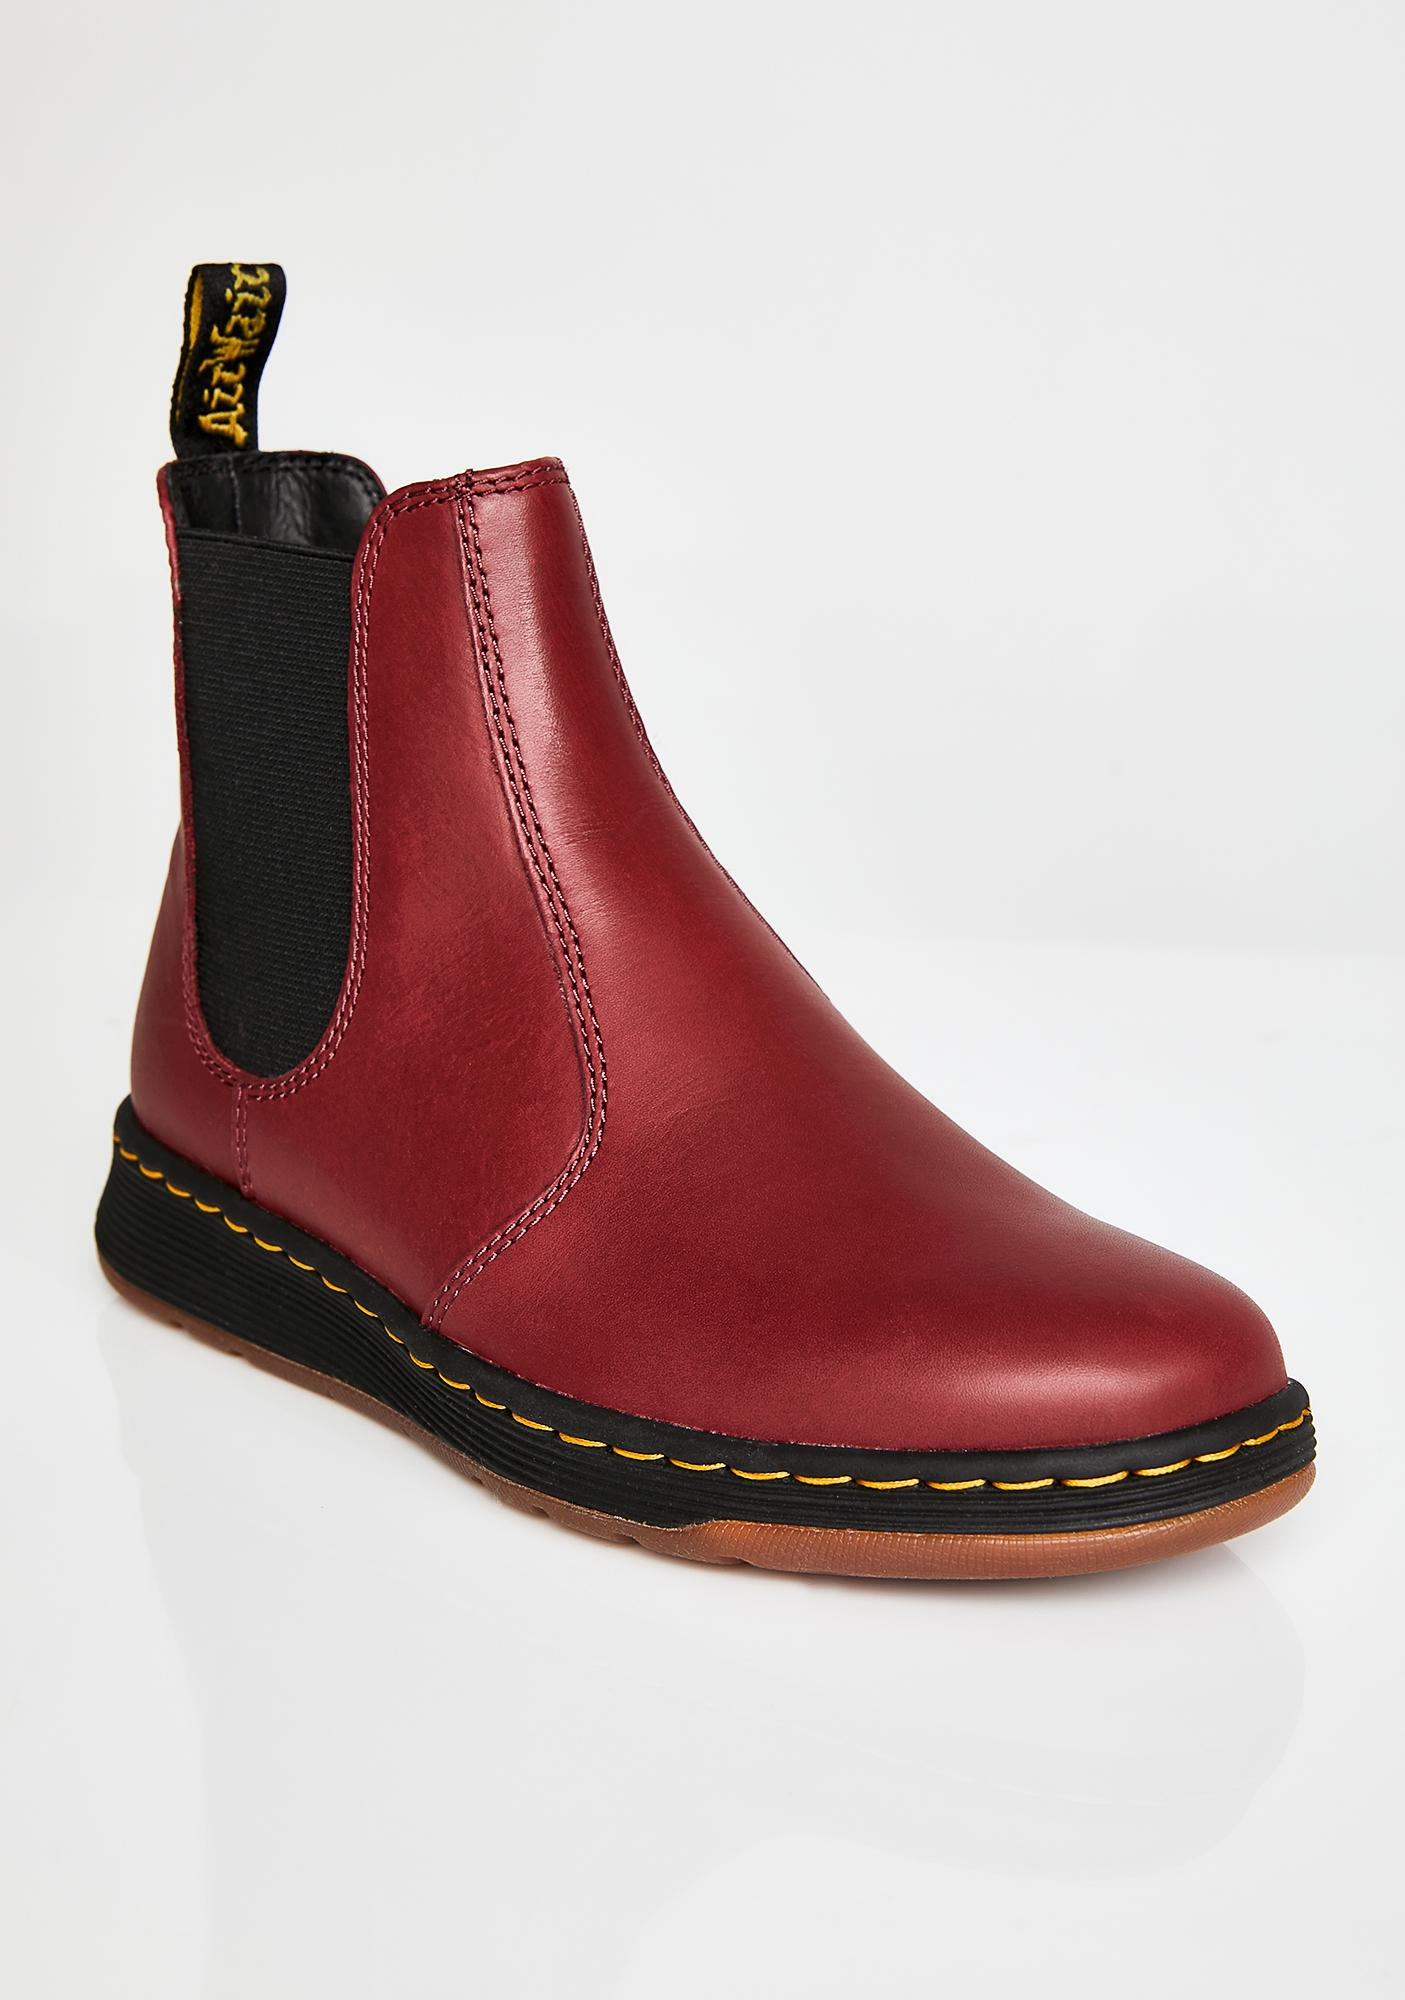 Dr. Martens Cherry Red Grayson Boots